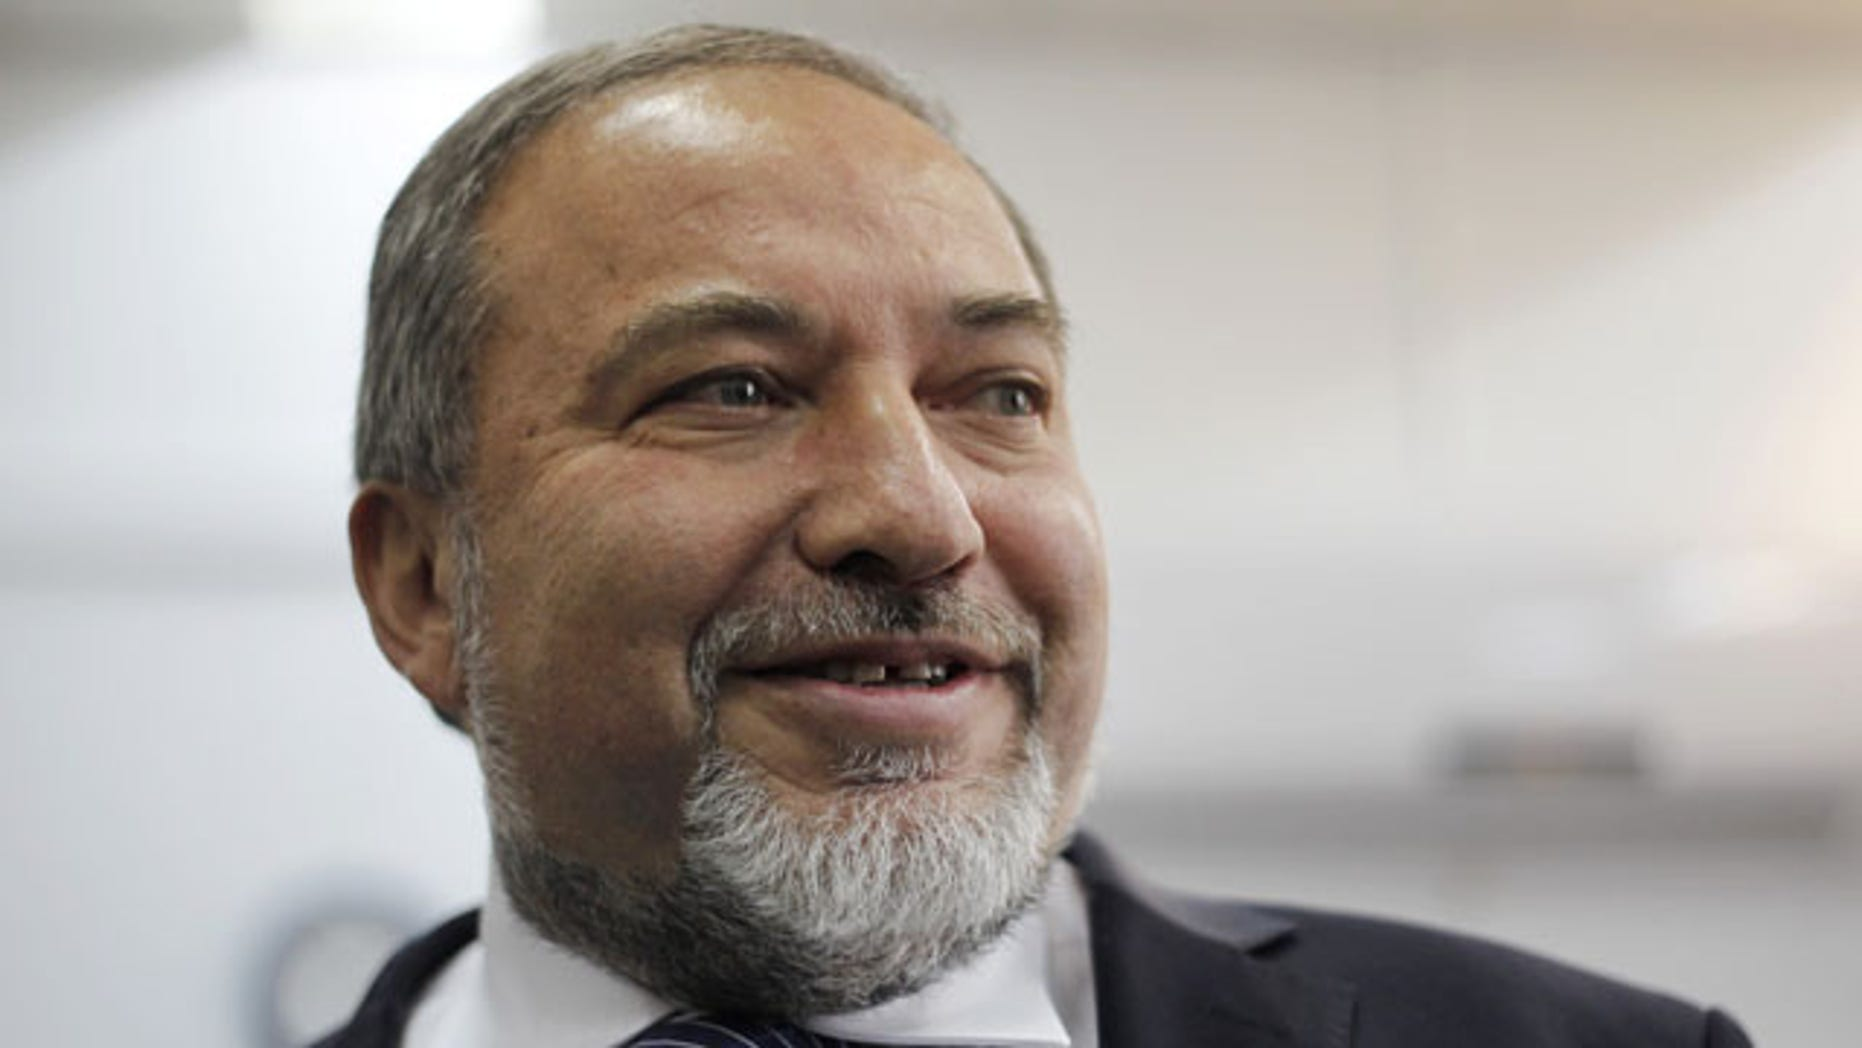 FILE - In this Sunday, Feb. 17, 2013 file photo, Israel's hard-line former Foreign Minister Avigdor Lieberman arrives at a Jerusalem court for the opening hearing of his trial on charges of fraud and breach of trust. (AP Photo)